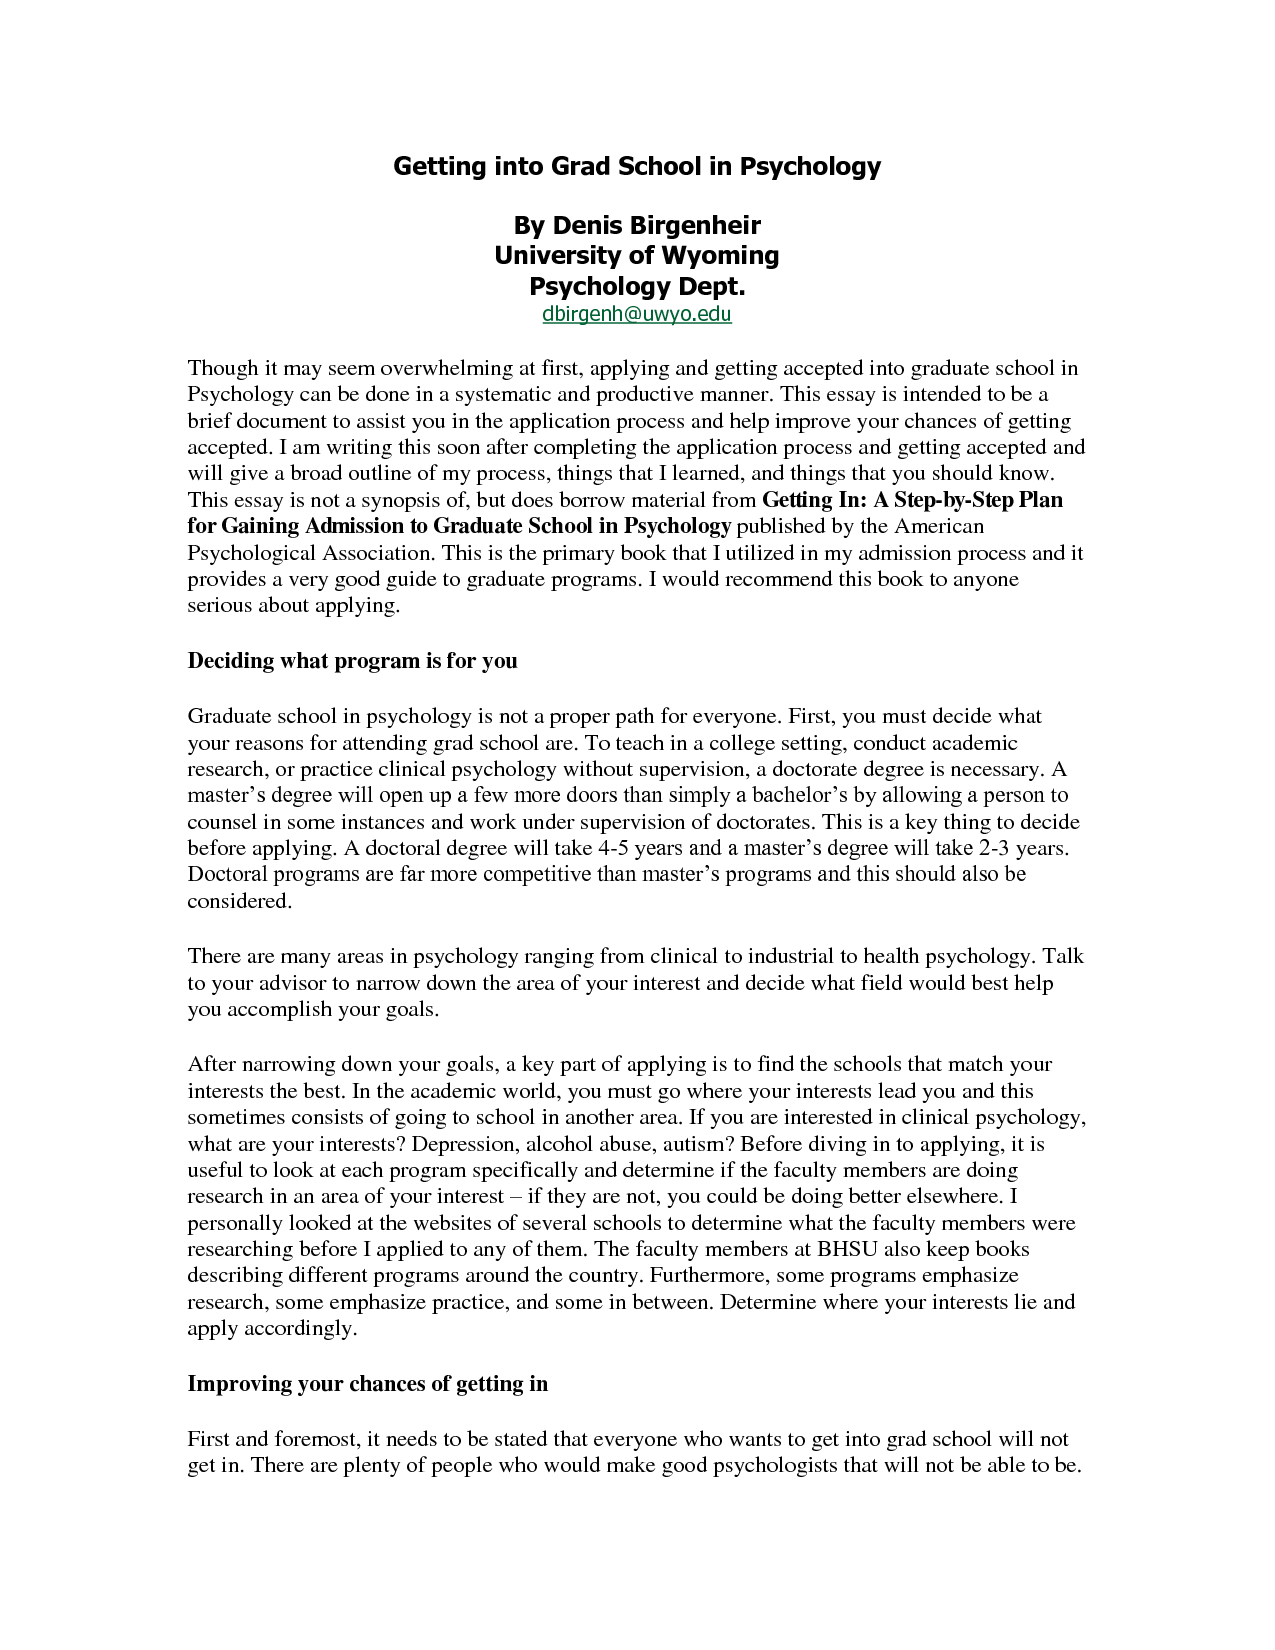 002 Graduation Essay Ydsmbeywi2 Excellent Sample High School Essays For 8th Grade Full